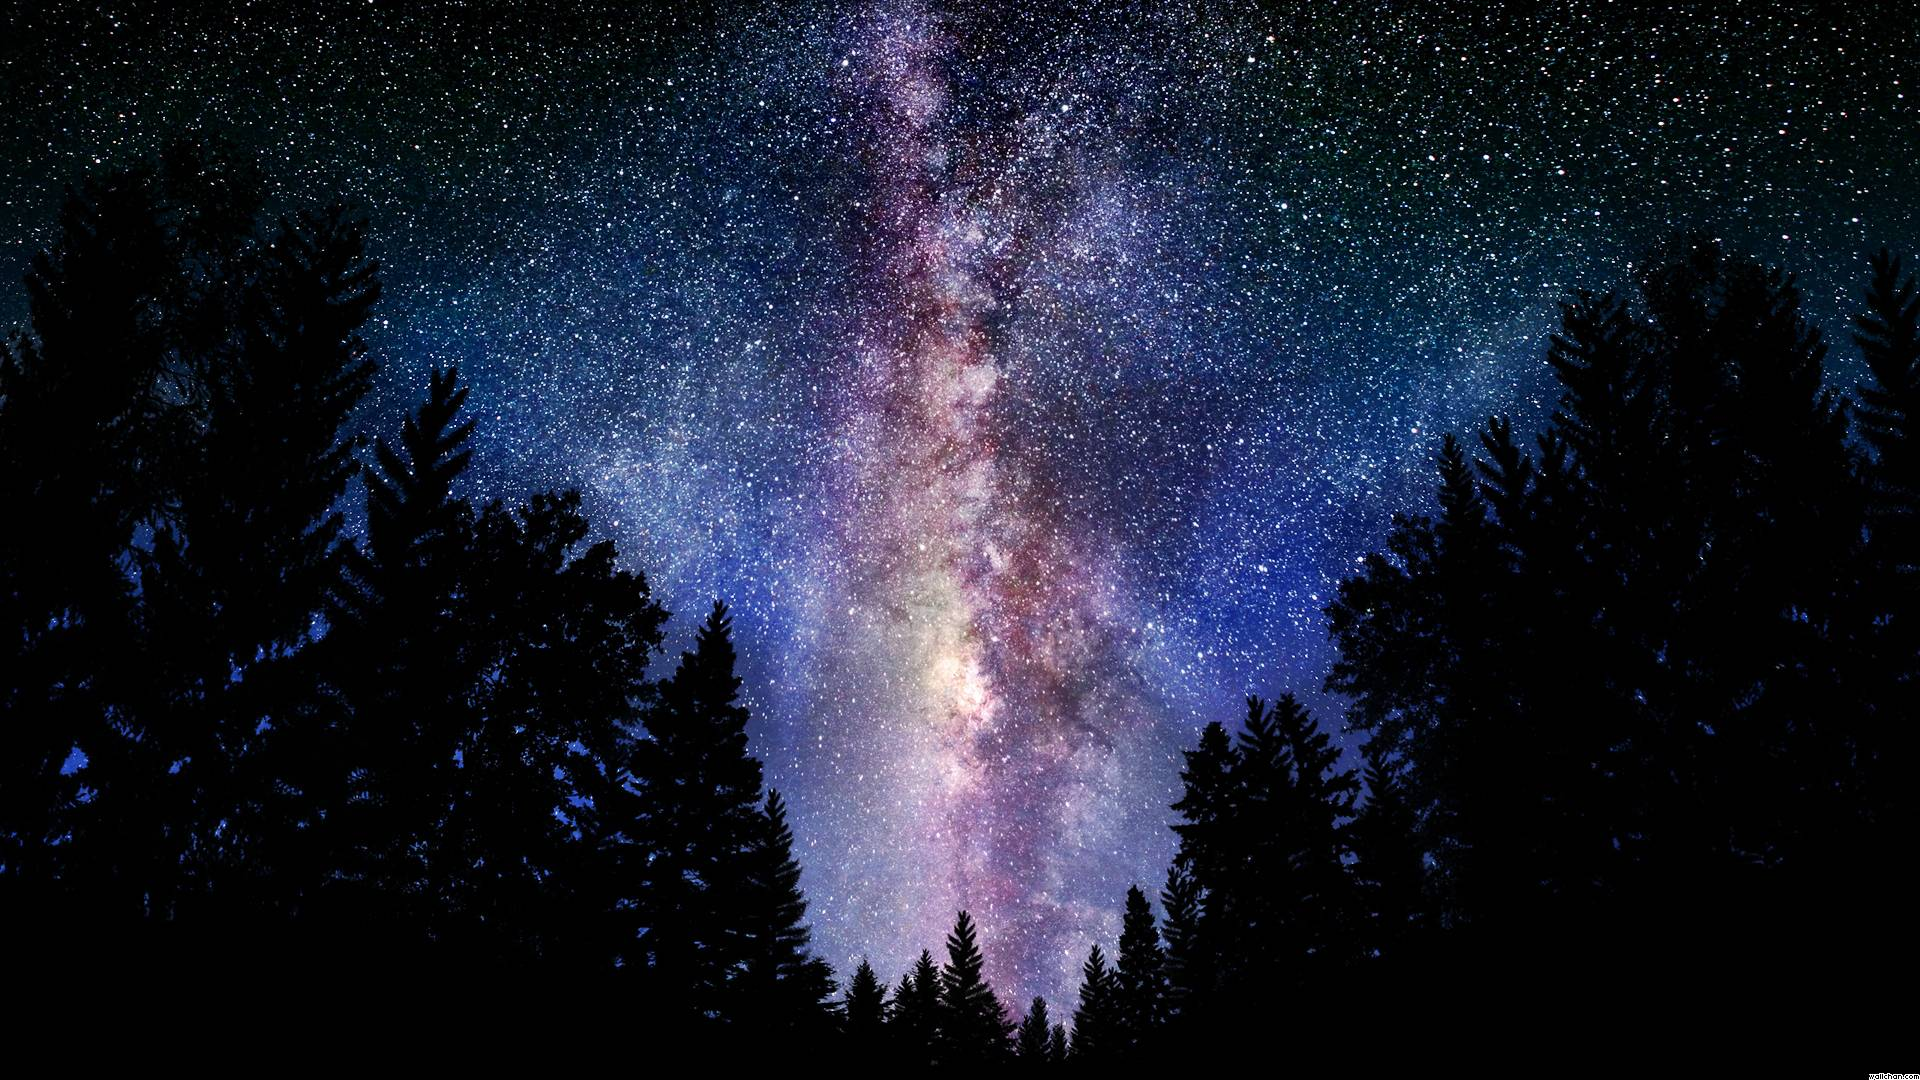 Milky Way Galaxy Wallpapers - Wallpaper Cave